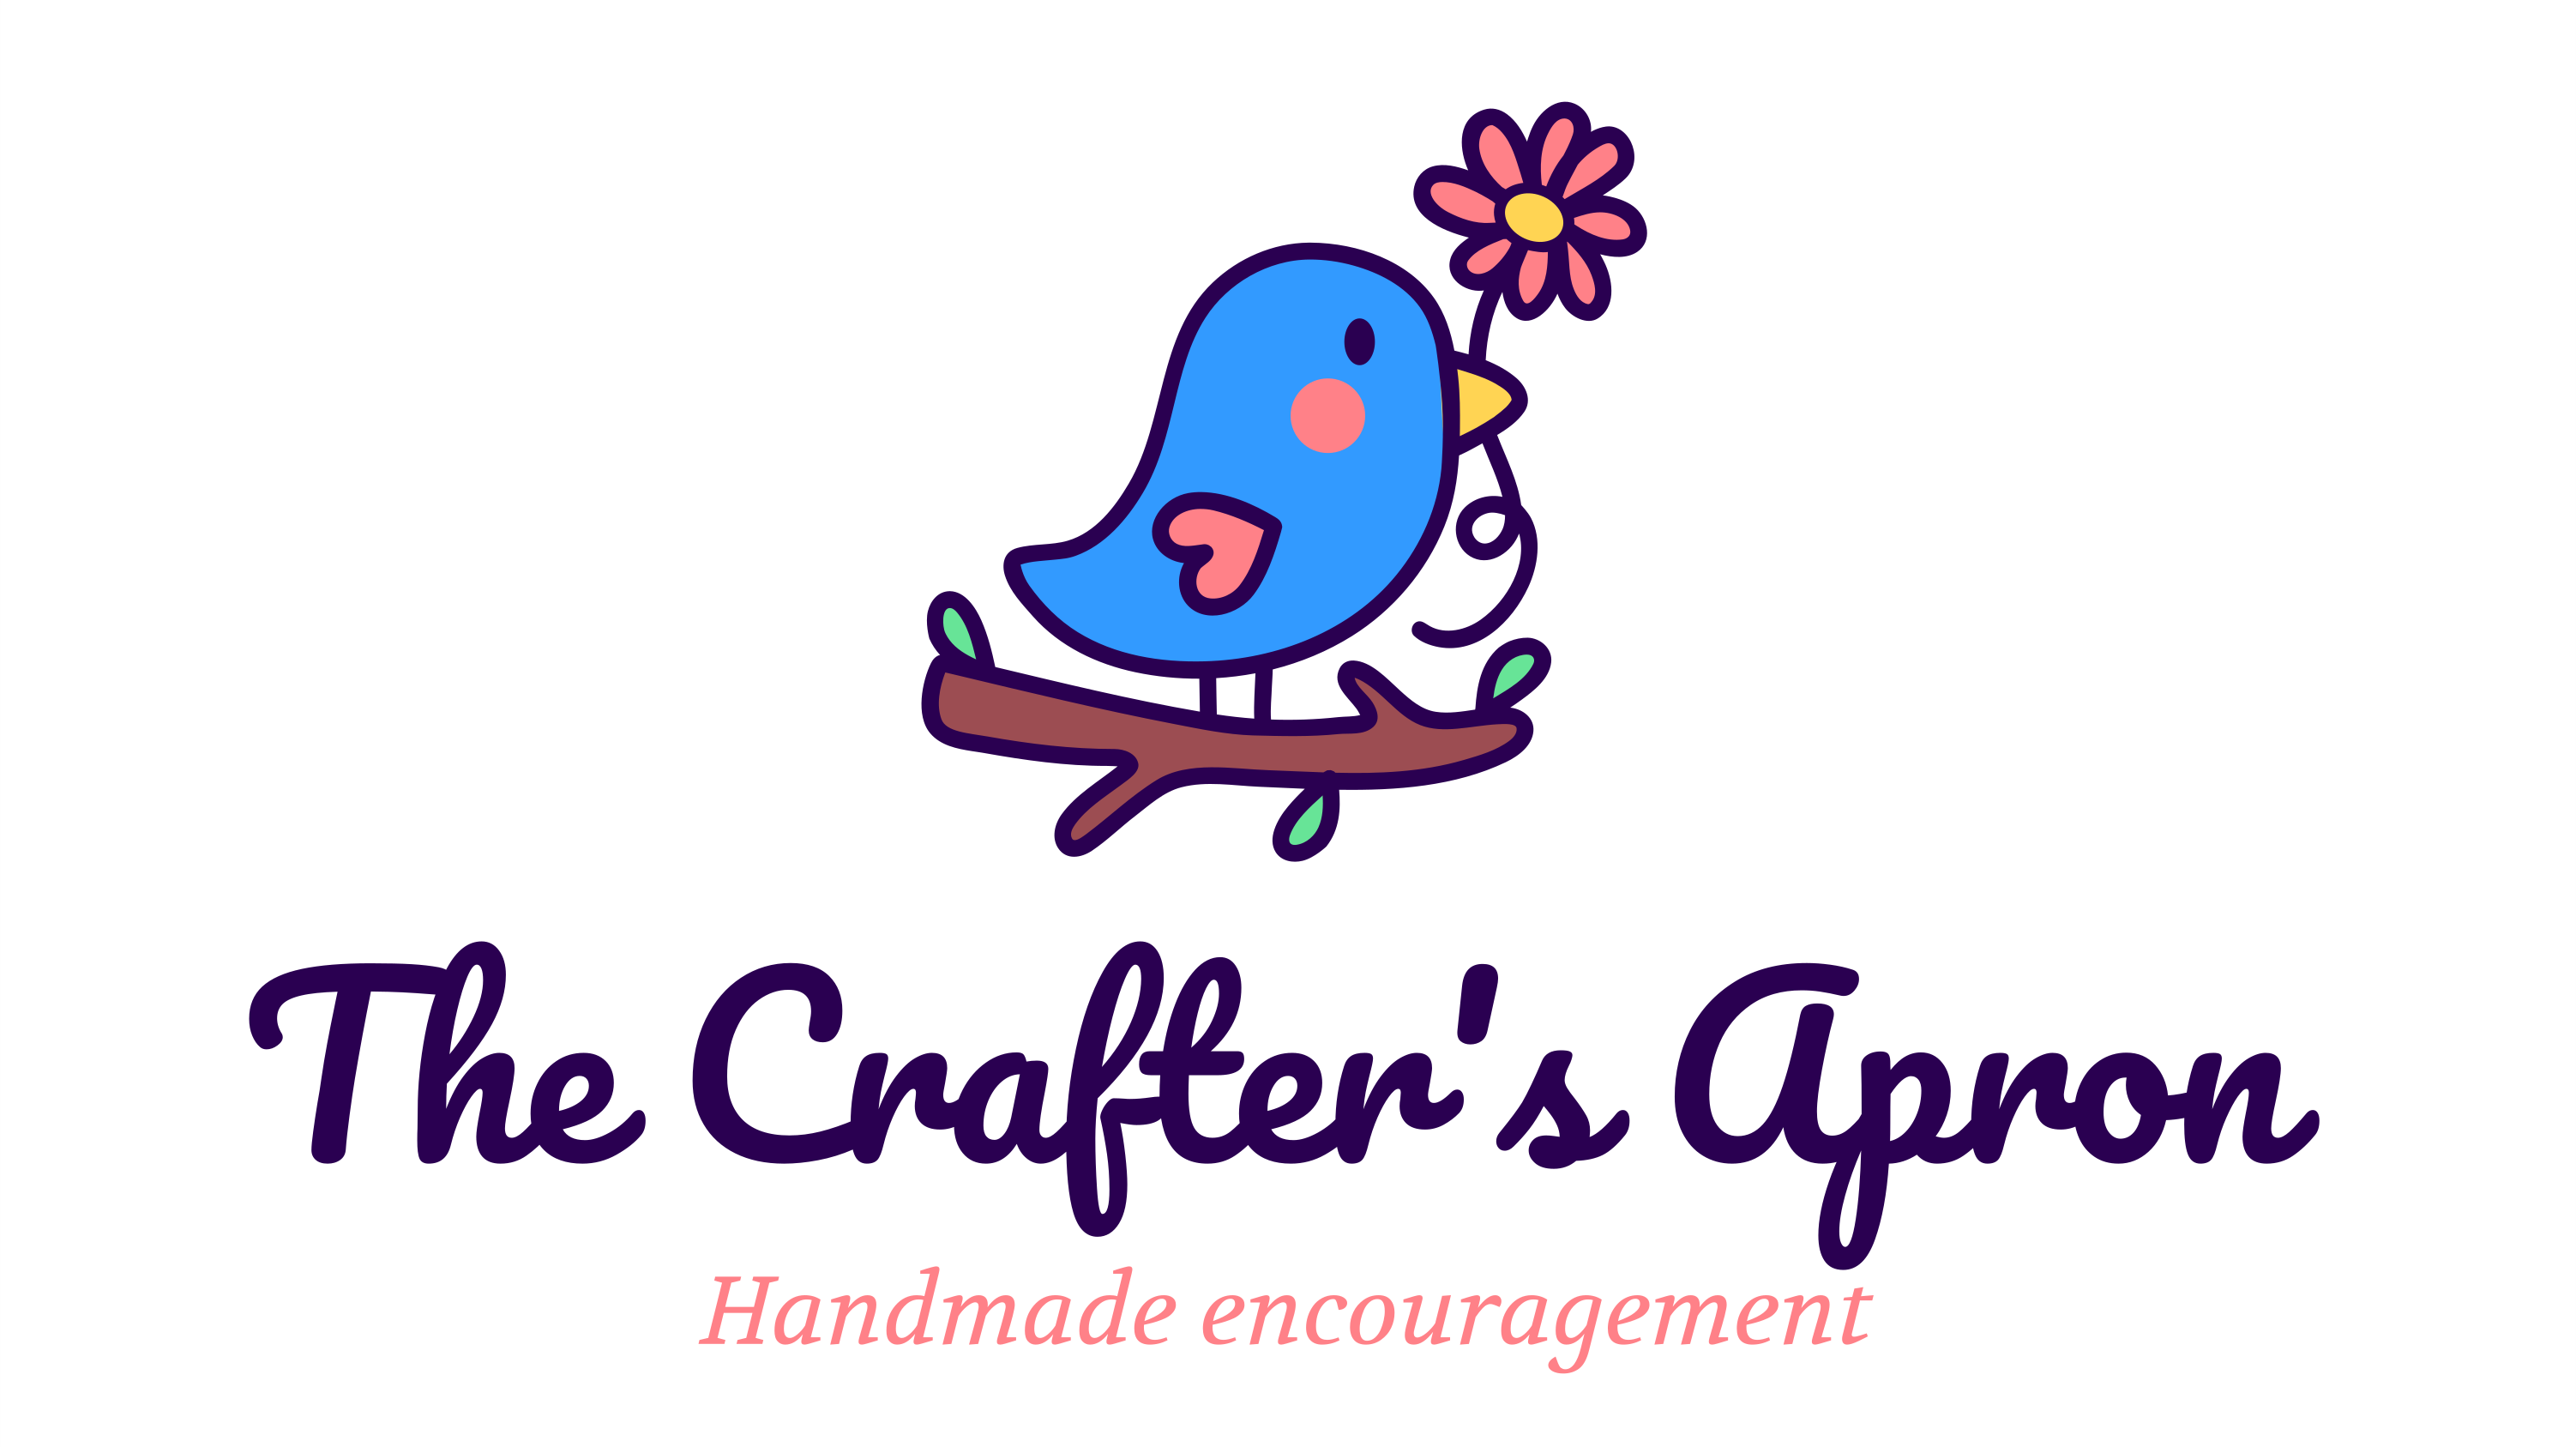 The Crafter's Apron